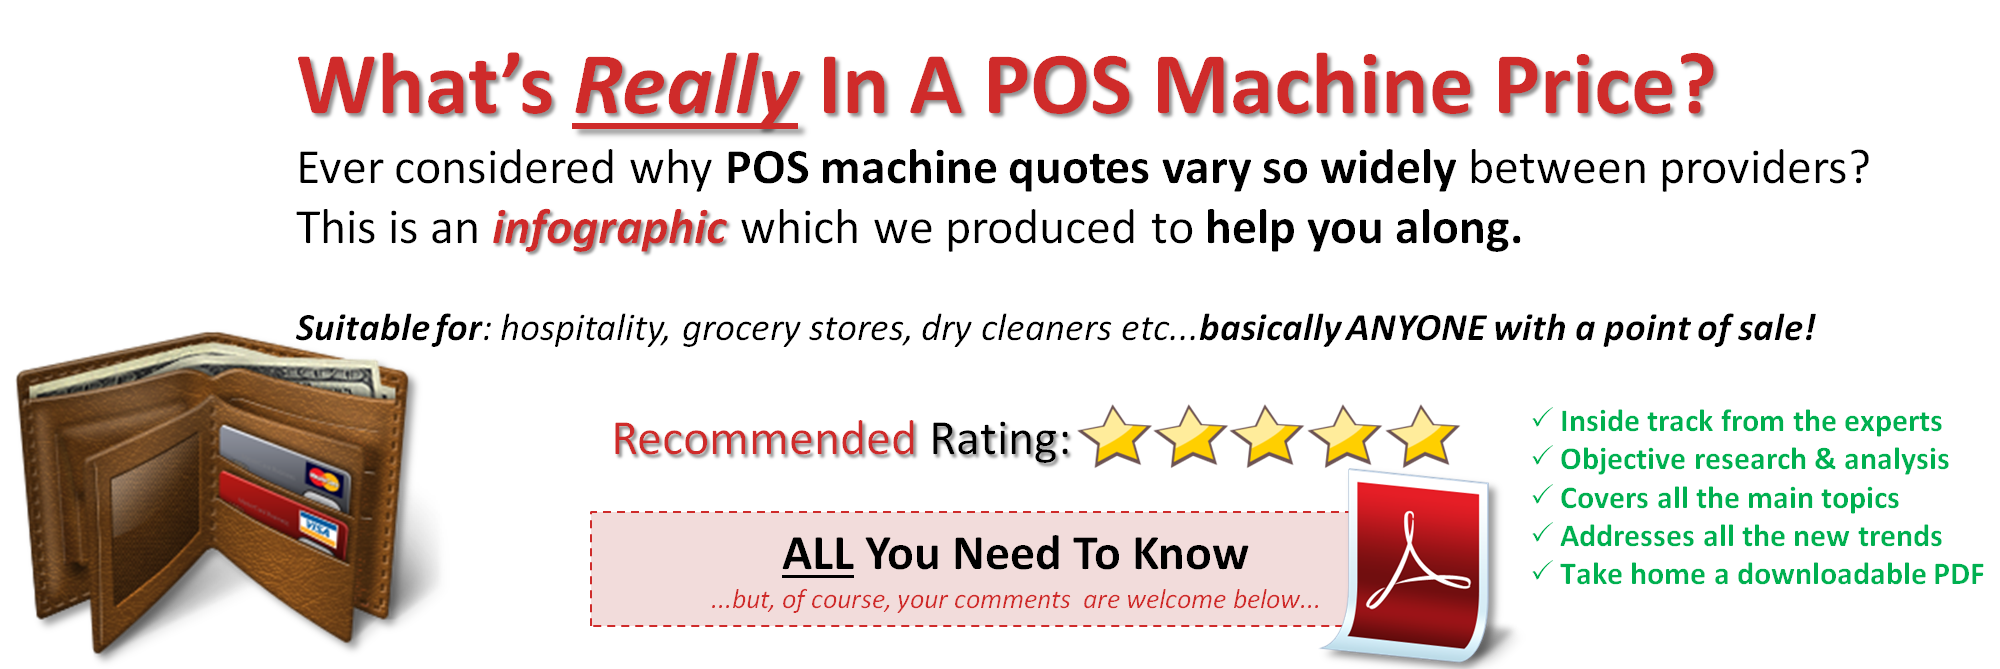 POS Machine Price